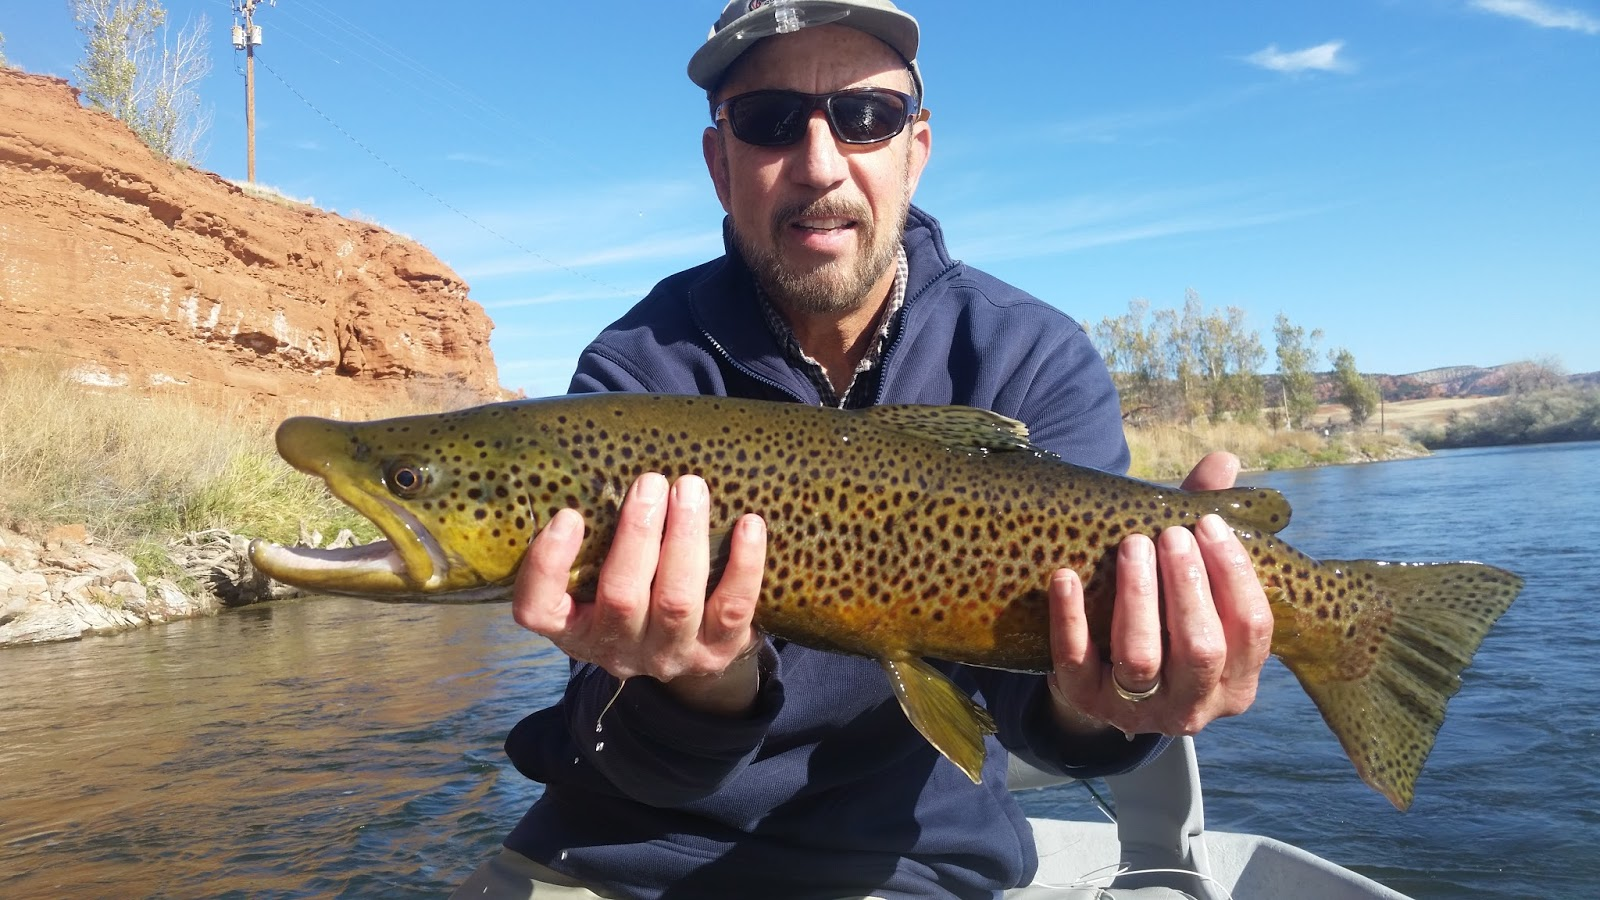 Owl creek flies bighorn river thermopolis fly fishing for Bighorn river fishing report